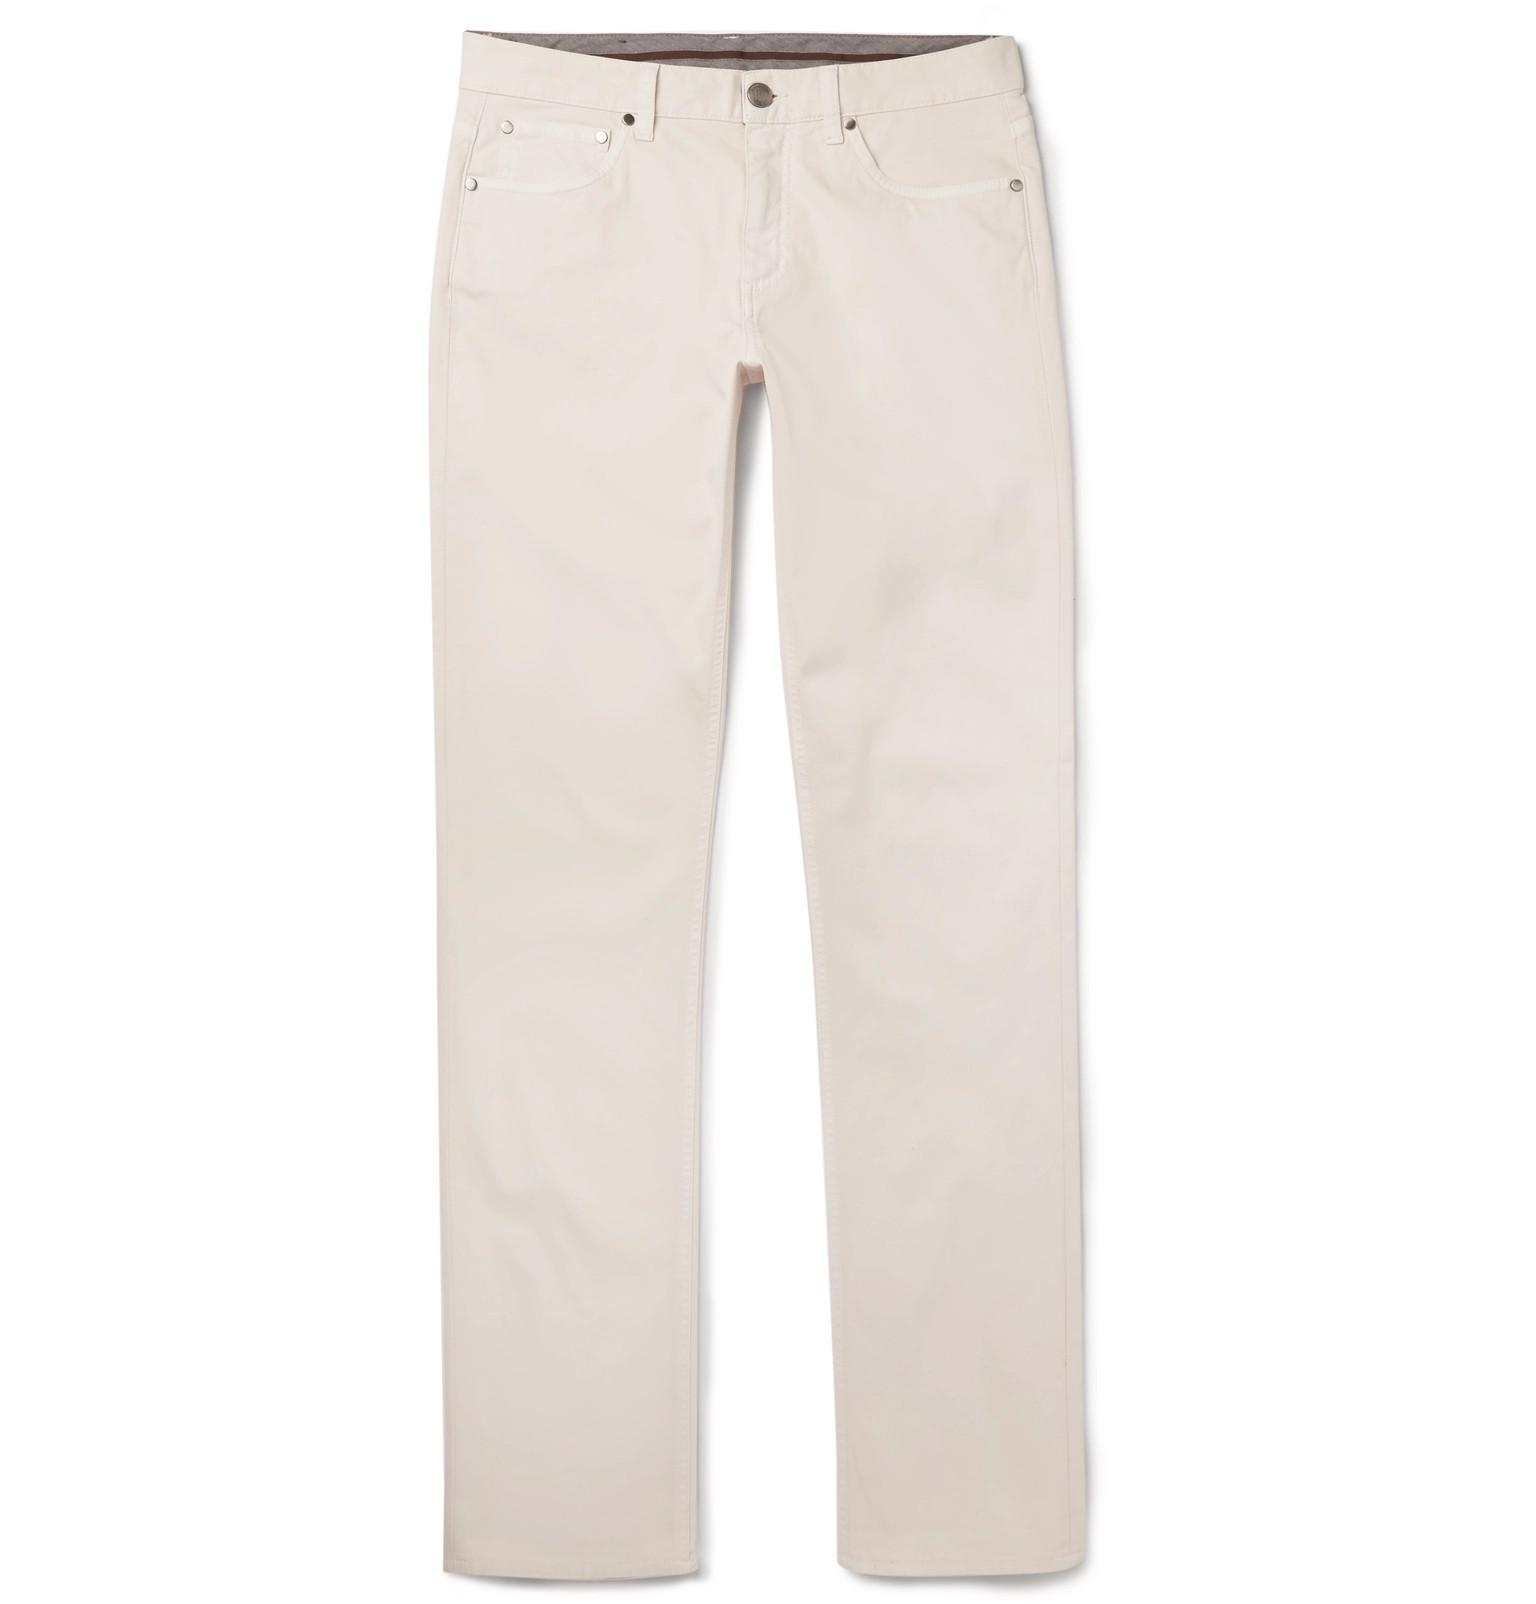 Clearance Online Ebay Fashion Style Sale Online Slim-fit Cotton And Linen-blend Twill Trousers Ermenegildo Zegna Pay With Visa Cheap Sale Purchase wXvetnfP